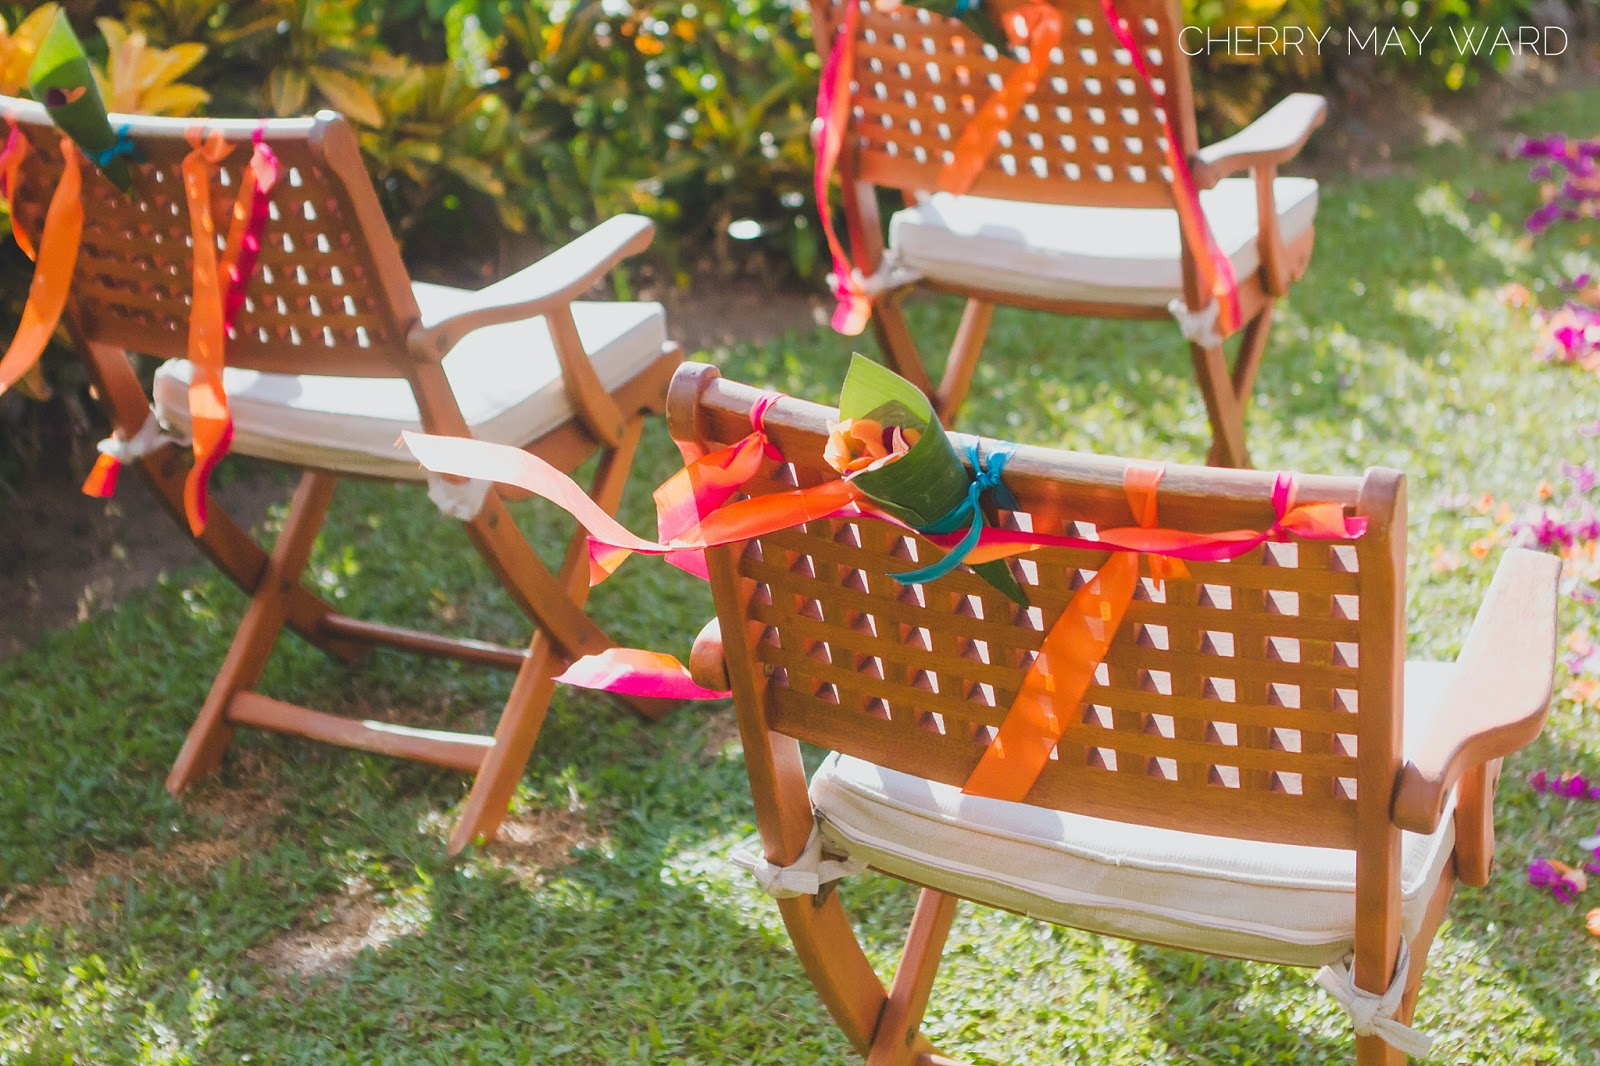 Koh Samui Villa wedding decorations, Thailand villa wedding decorations, colourful villa wedding decorations, DIY decorations, ribbons on chairs, flower petals in banana leaf cones